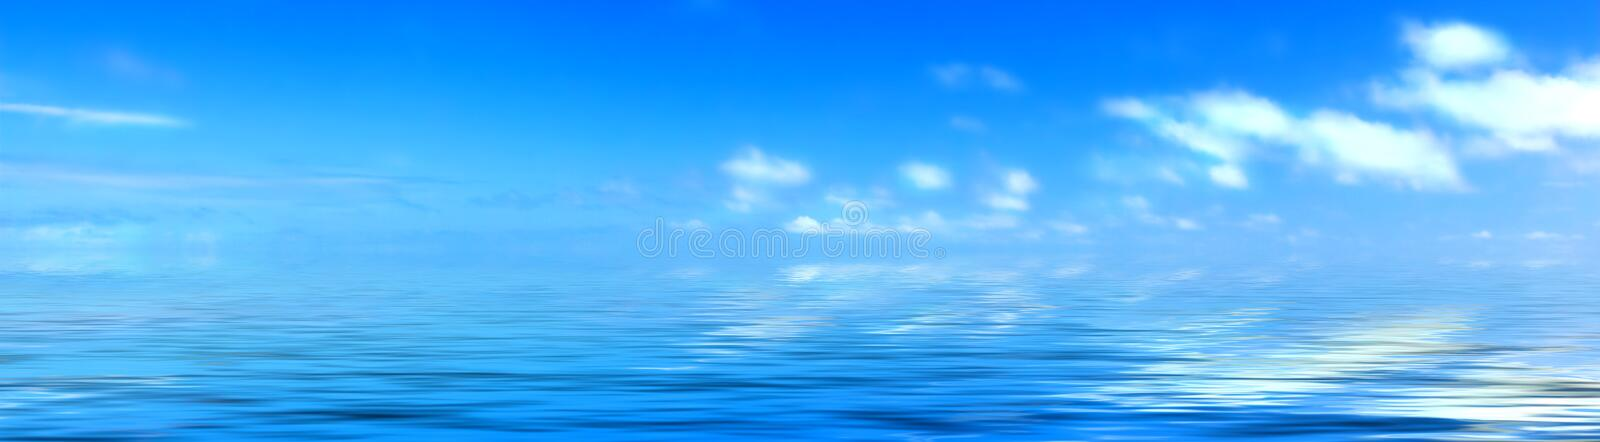 Clouds and ocean stock photography